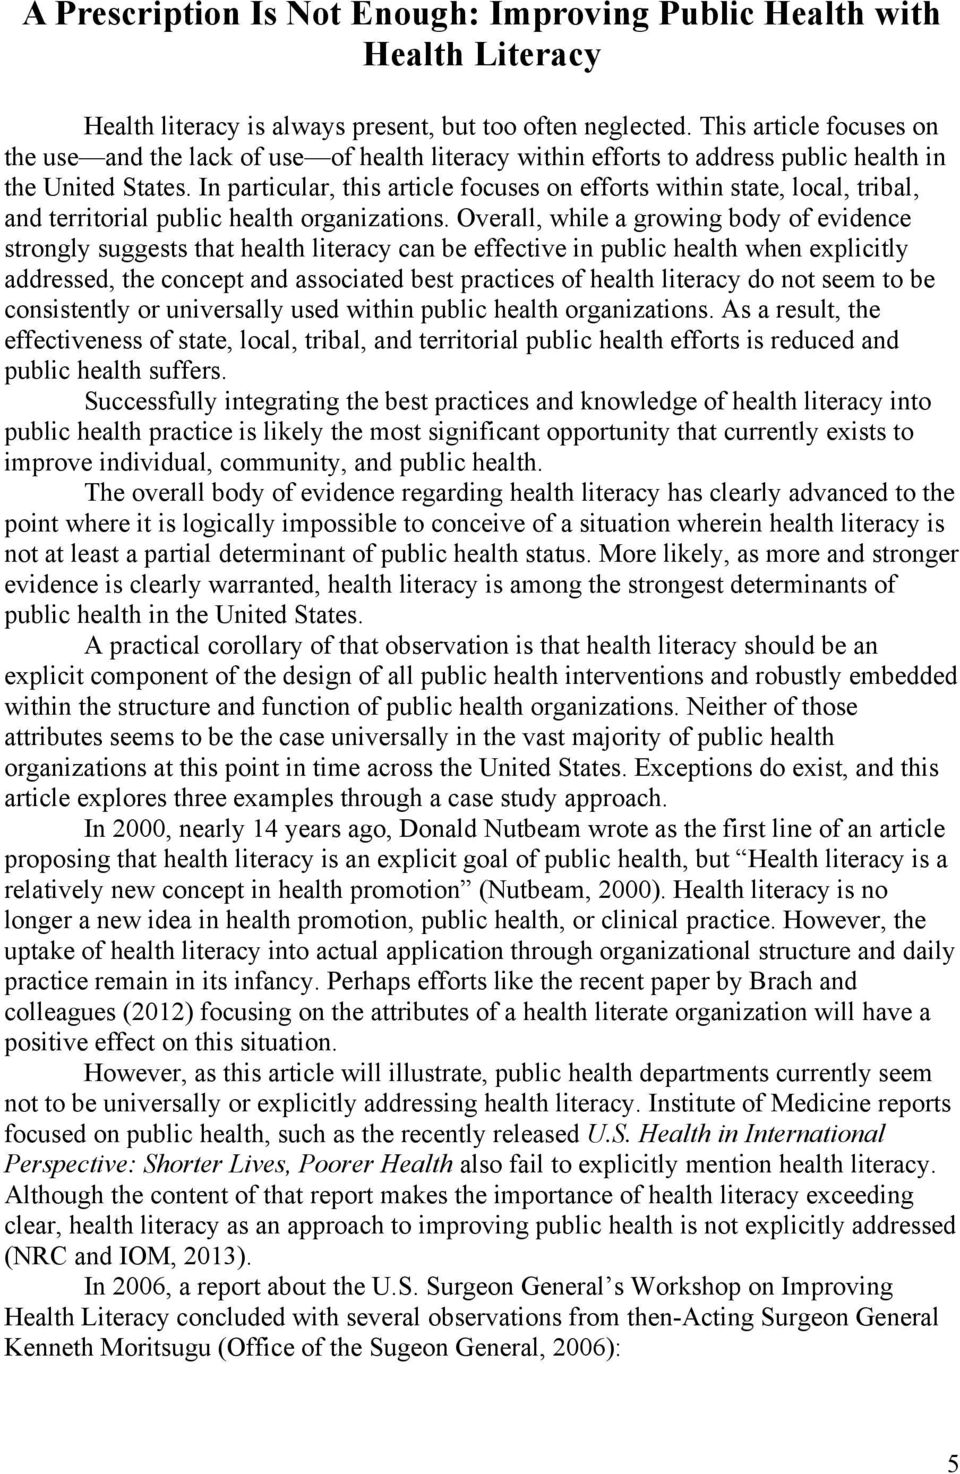 In particular, this article focuses on efforts within state, local, tribal, and territorial public health organizations.